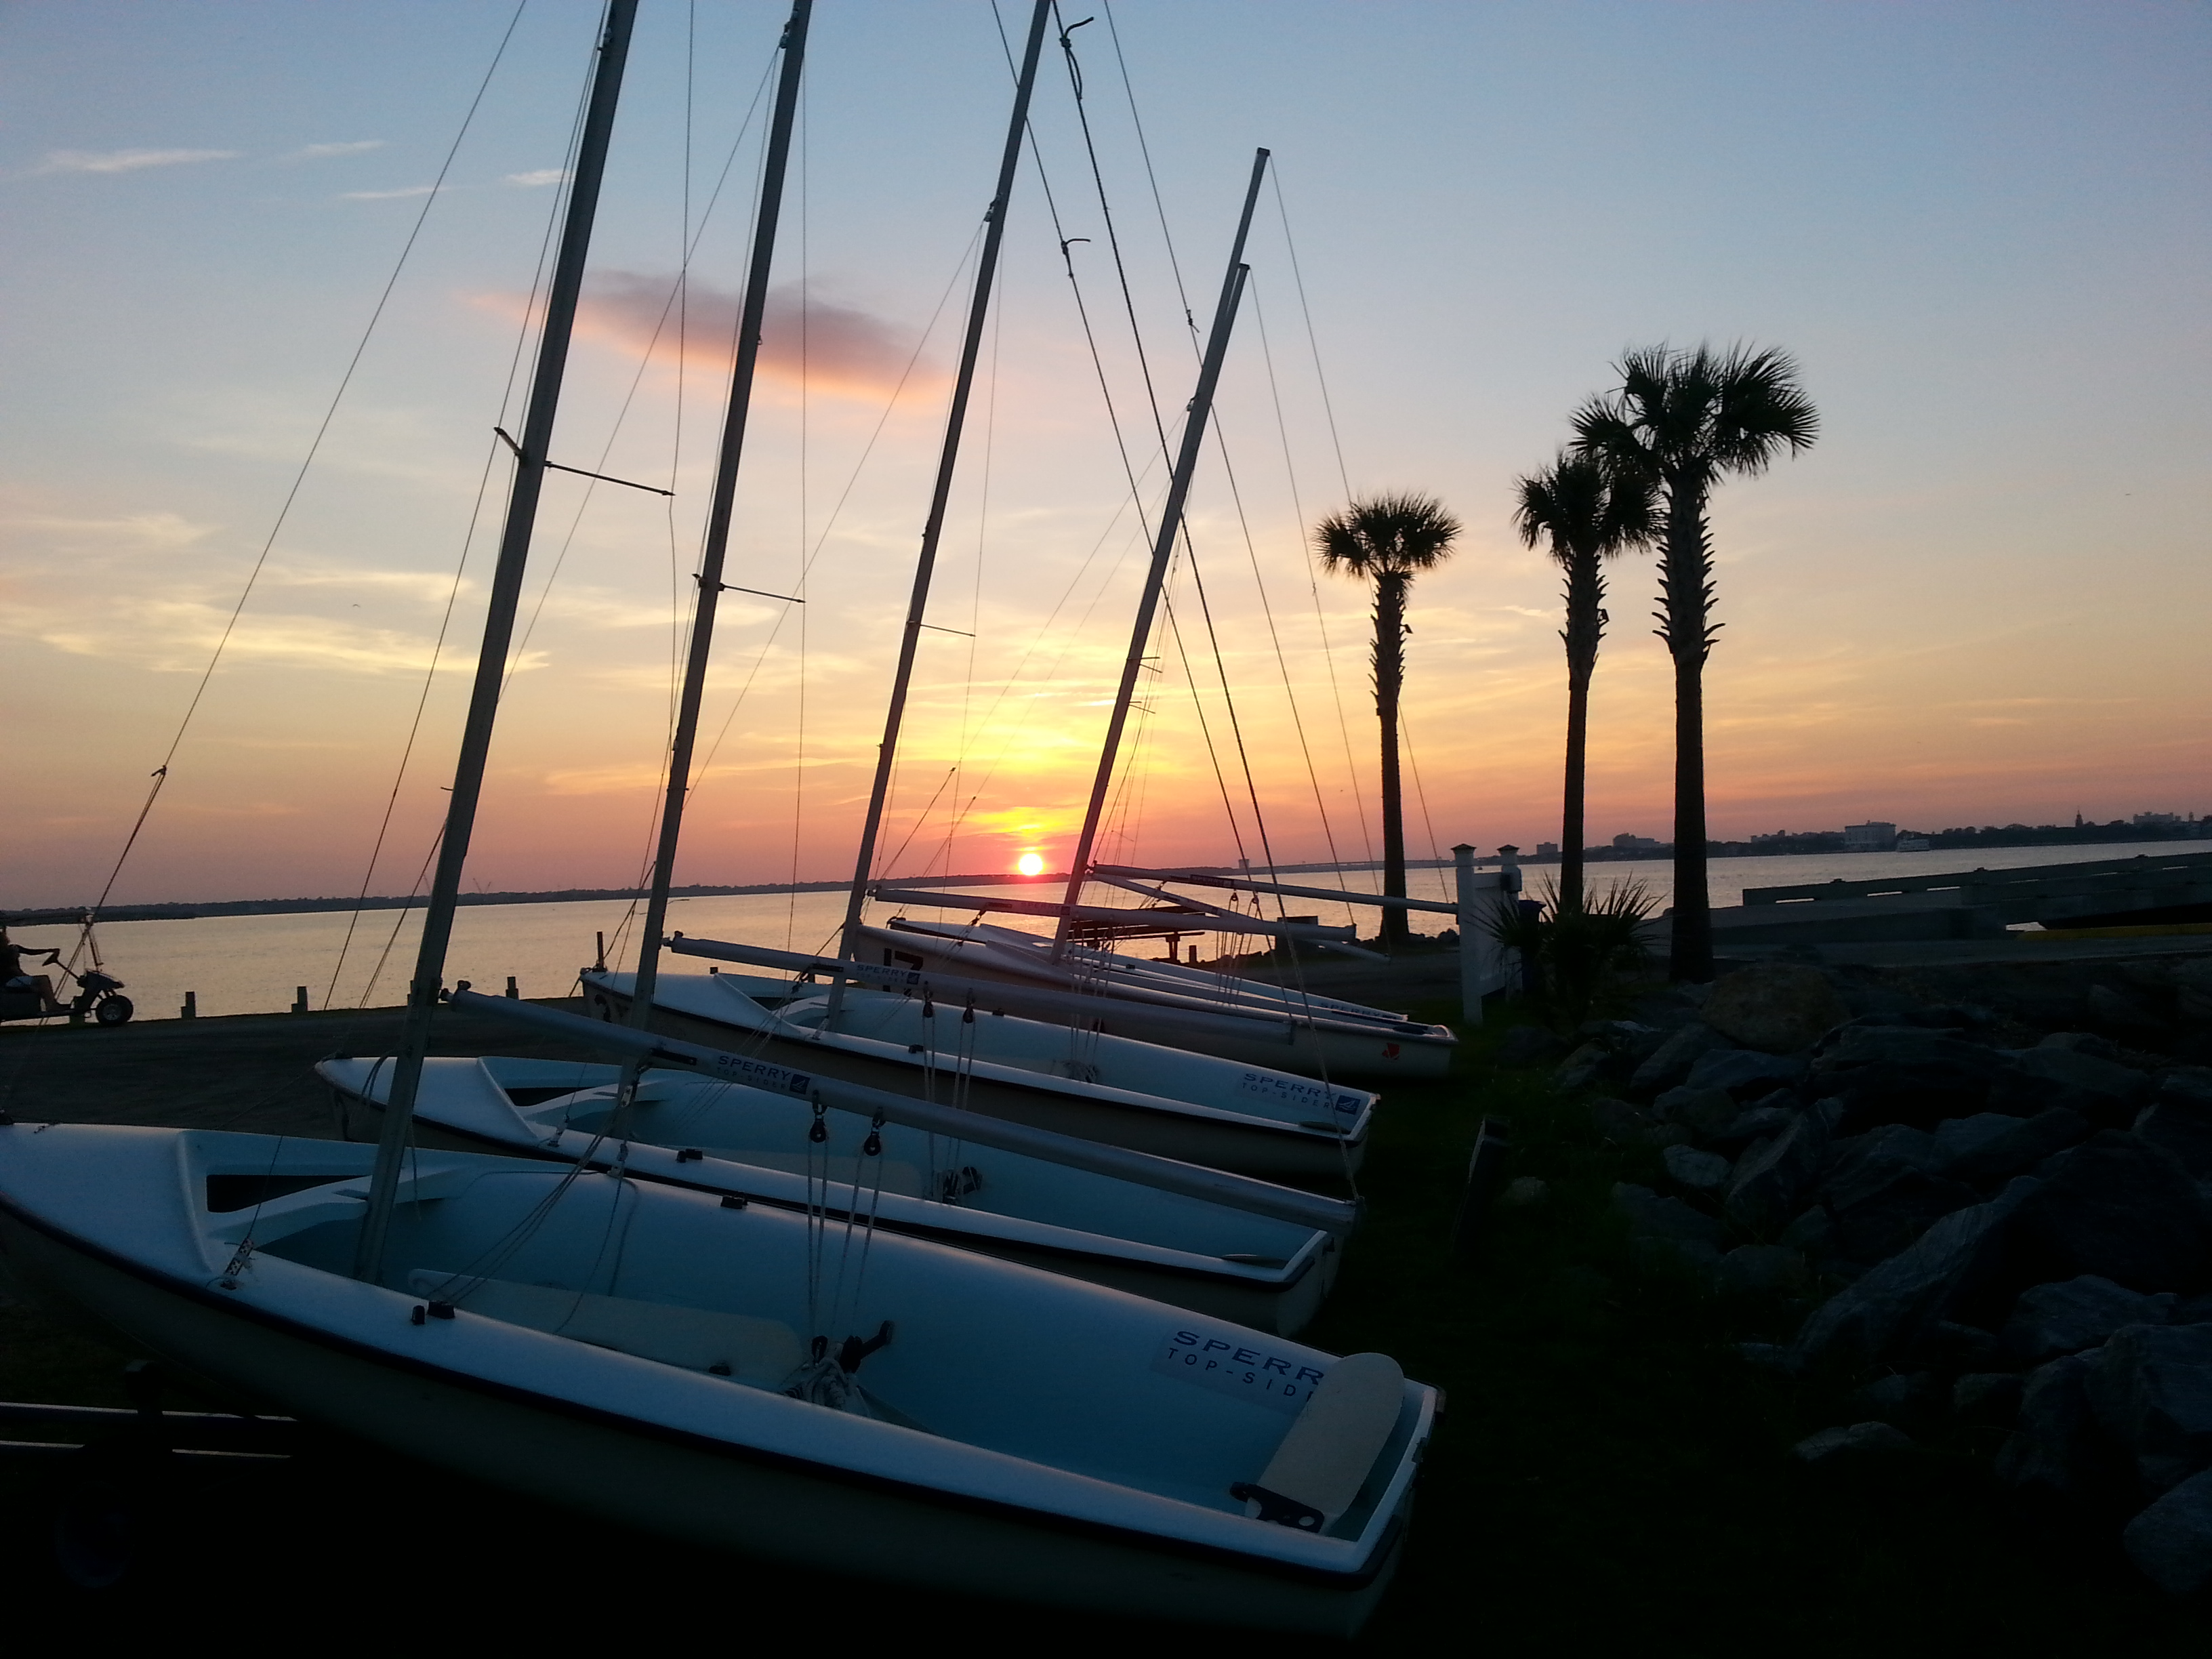 charleston harbor with sailboats at james island